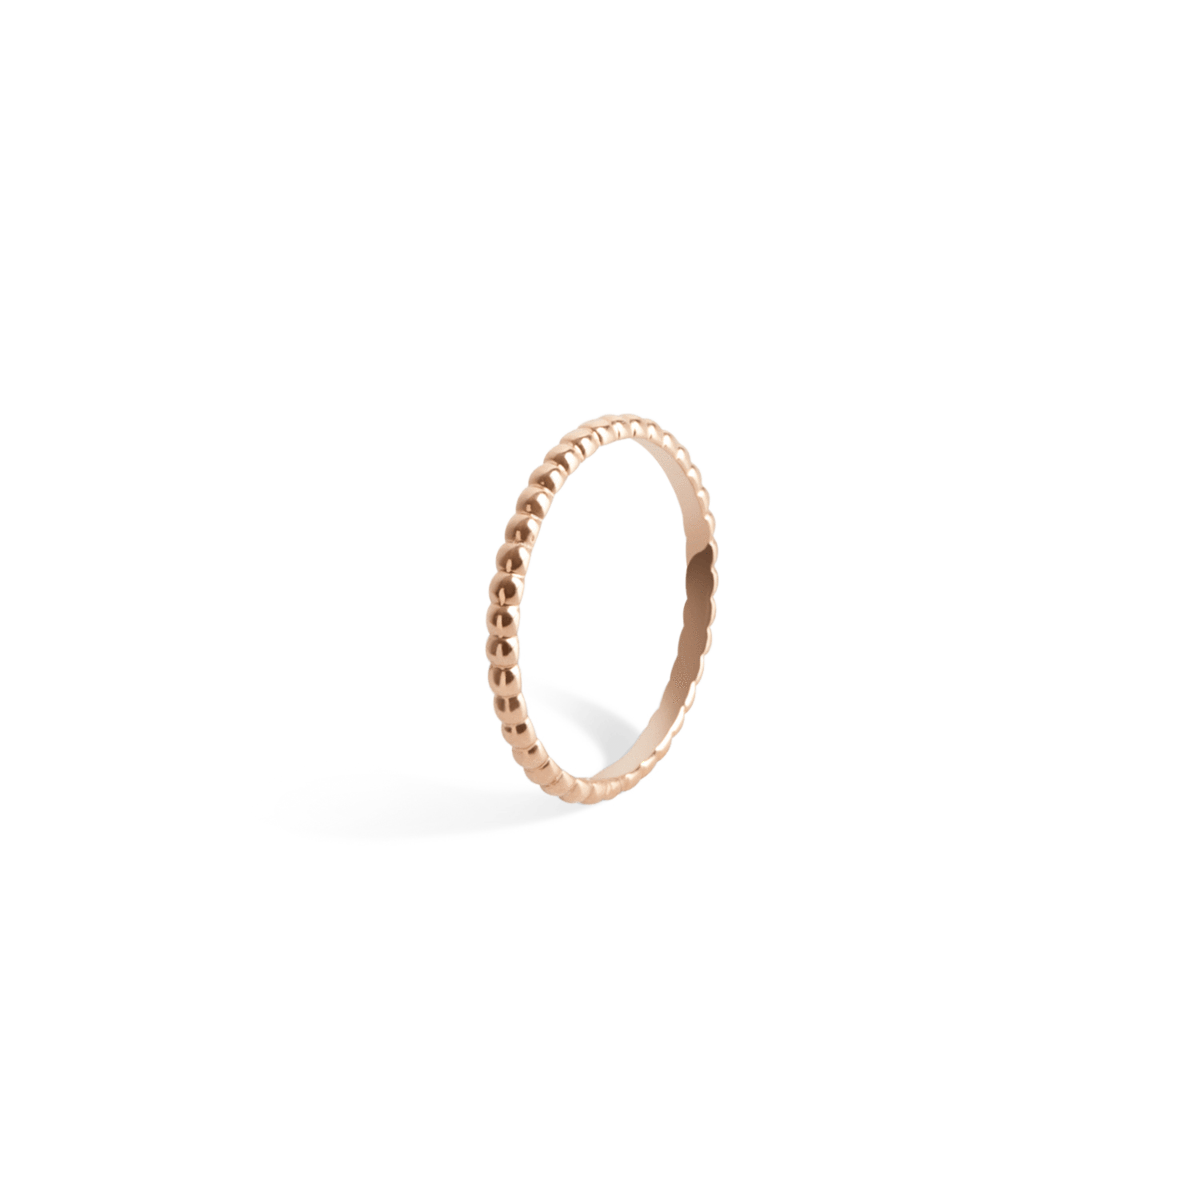 131adc55841d72 Mini Circle Ring | Baubles & Bling | Rings, Gold rings, Gold